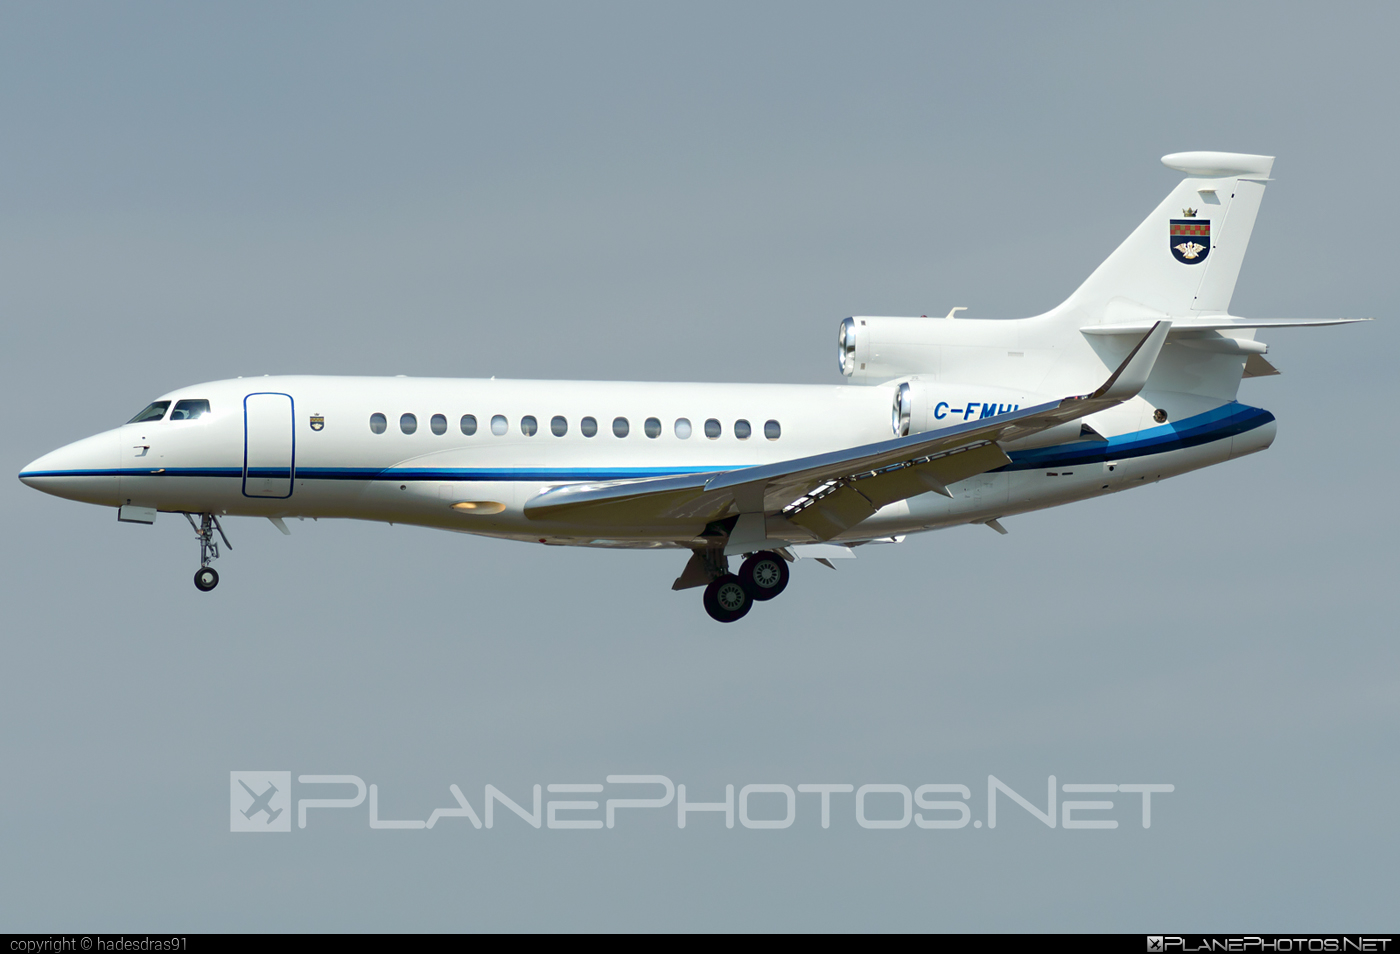 Dassault Falcon 7X - C-FMHL operated by Private operator #dassault #dassaultfalcon #dassaultfalcon7x #falcon7x